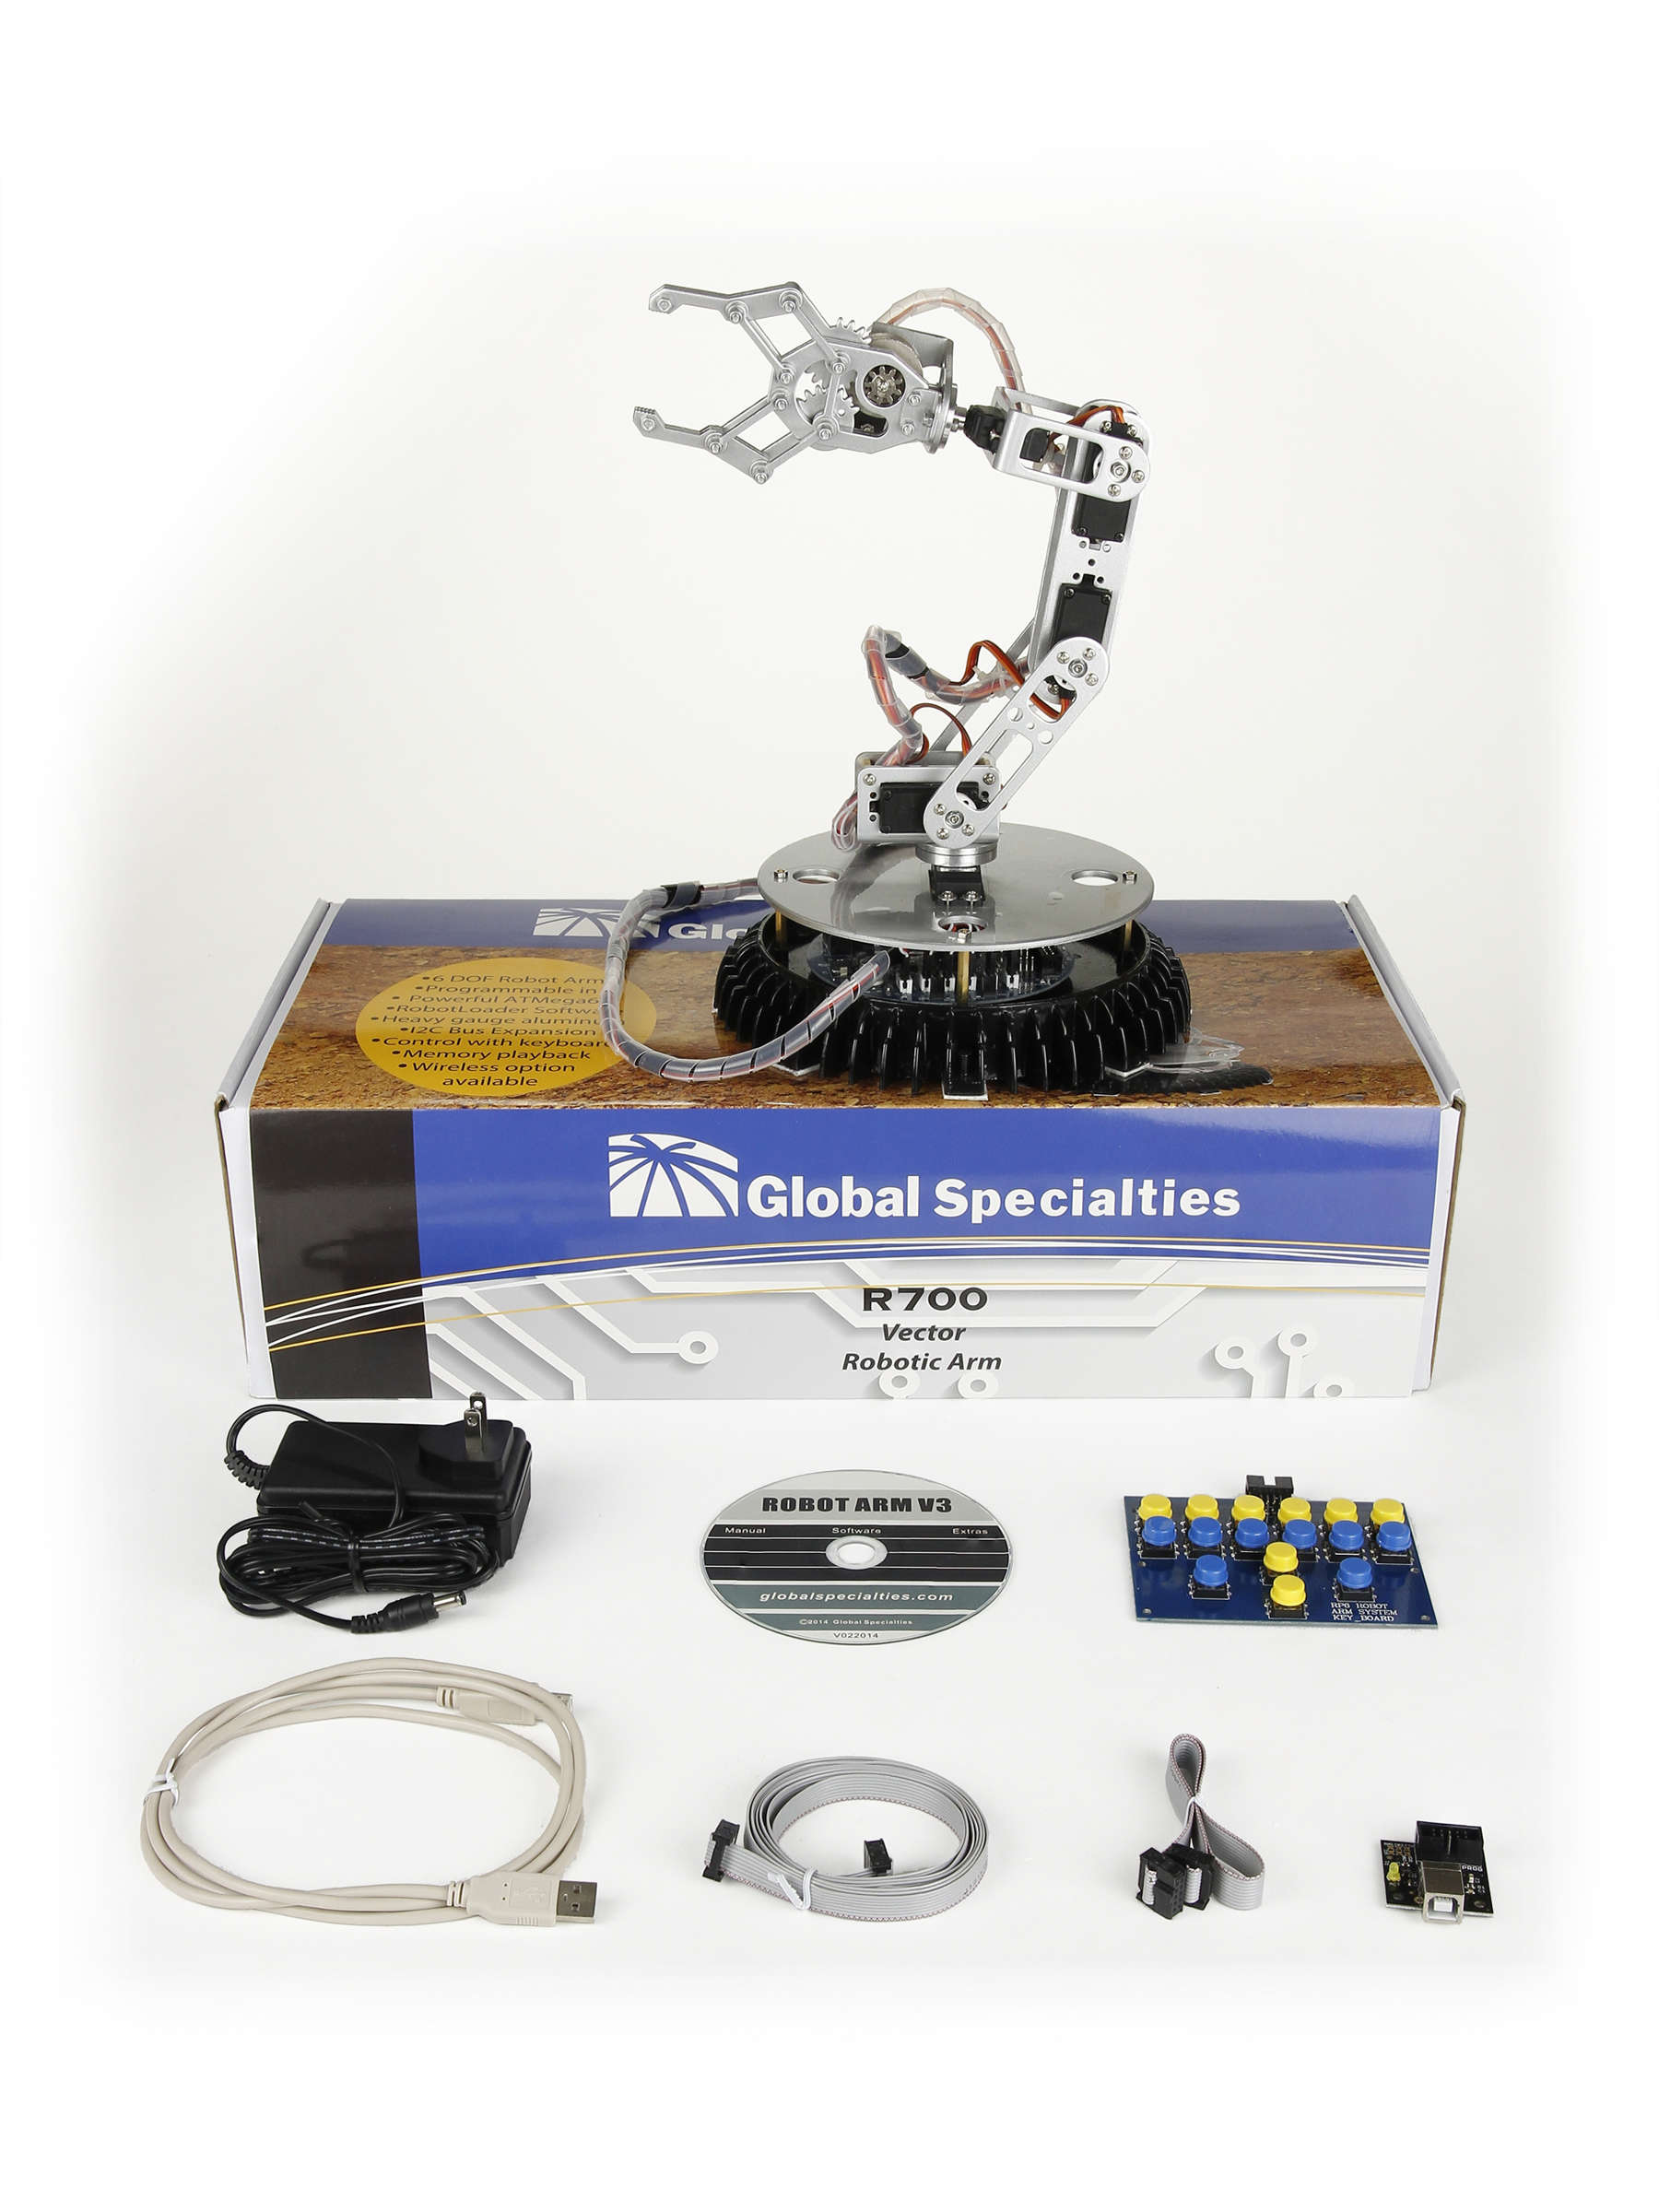 Global Specialties R700 Vector Robotic Arm Photo